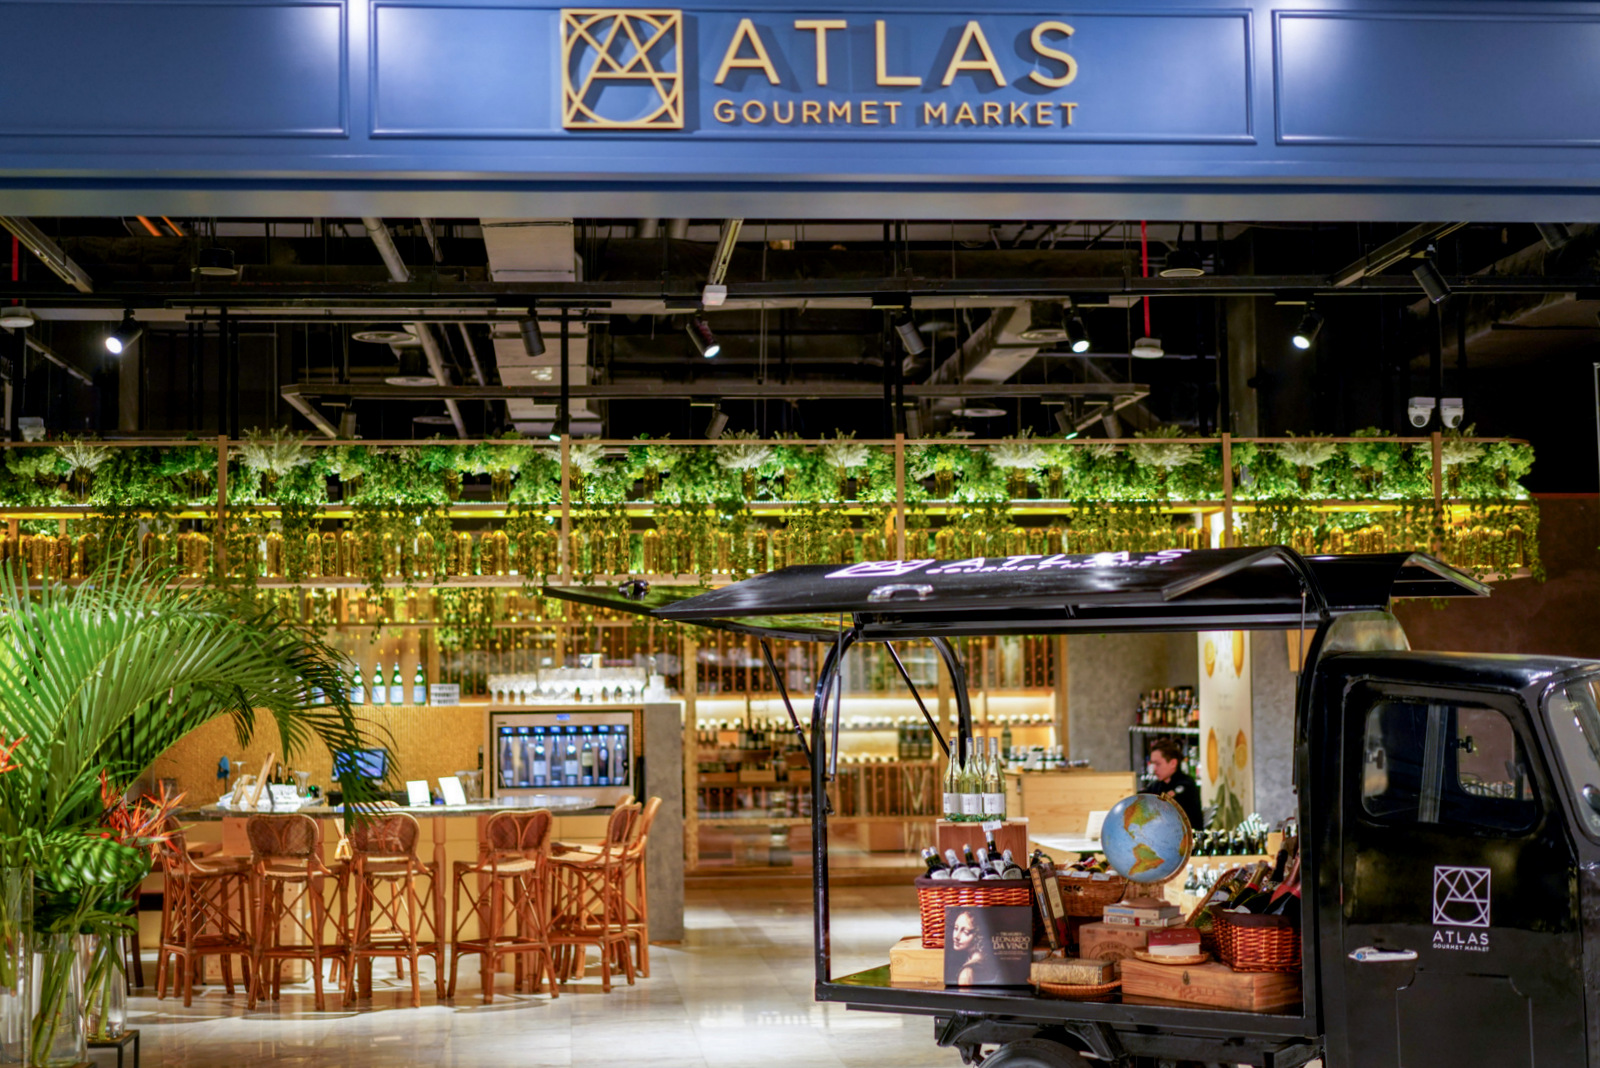 Atlas Gourmet Market, Four Seasons Place